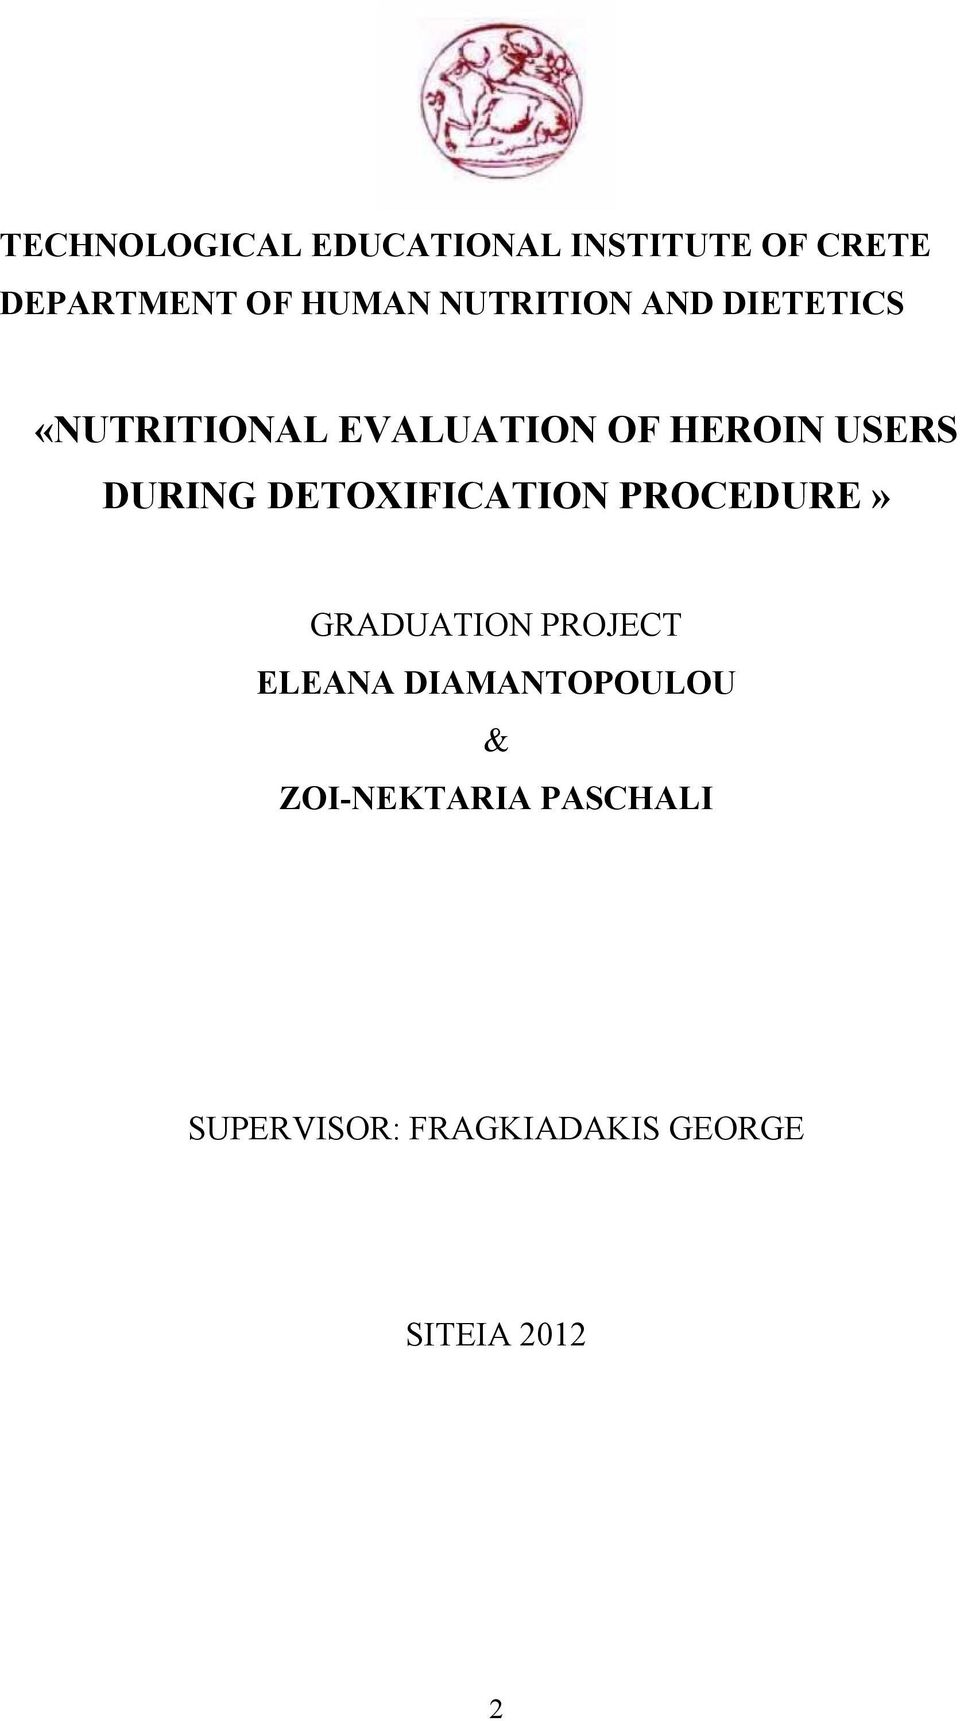 DURING DETOXIFICATION PROCEDURE» GRADUATION PROJECT ELEANA